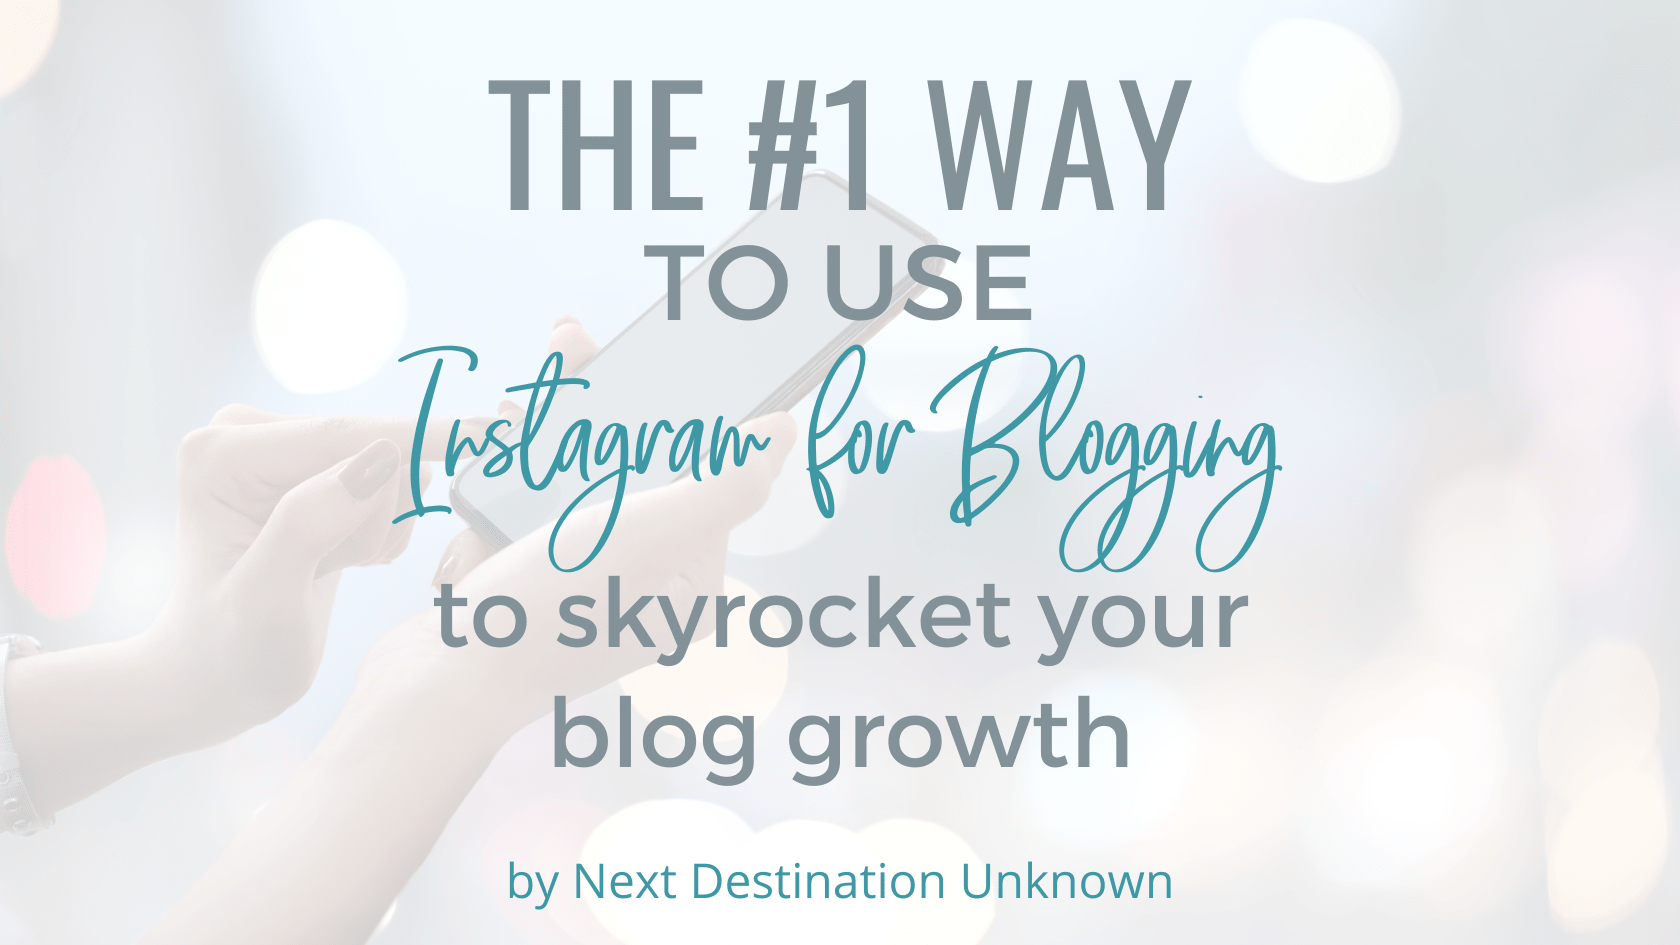 The #1 Way to Use Instagram for Blogging to Skyrocket Your Blog Growth